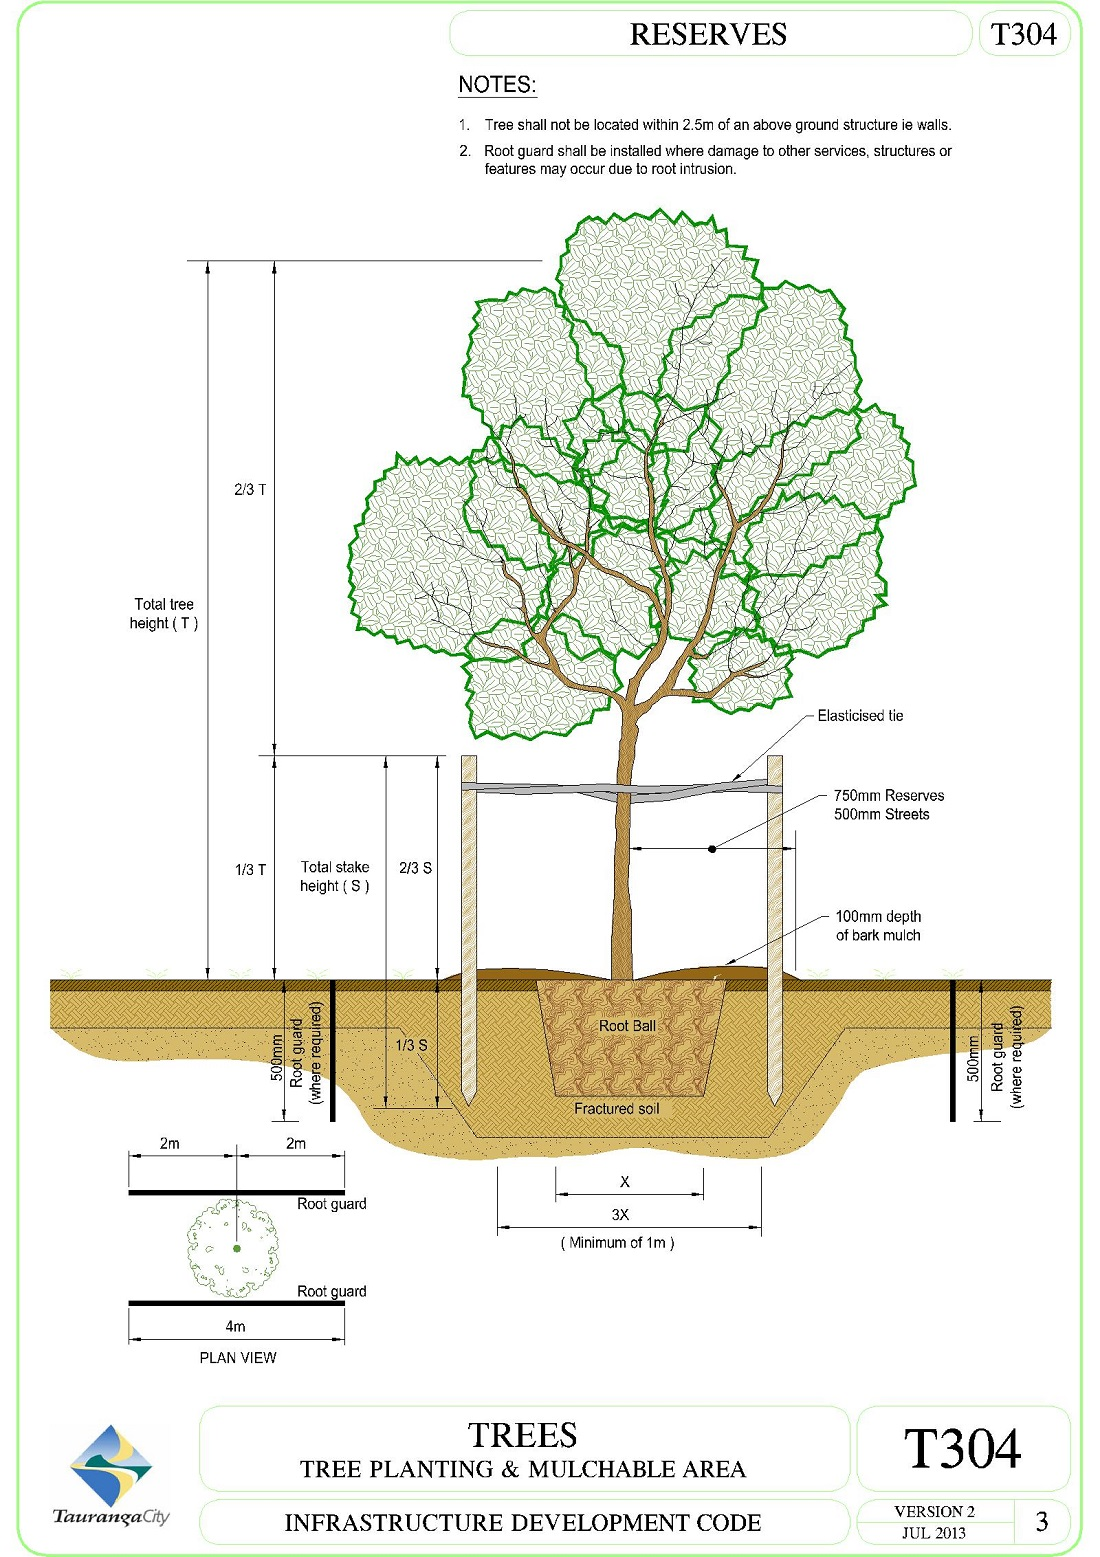 Tree Planting and Mulchable Area